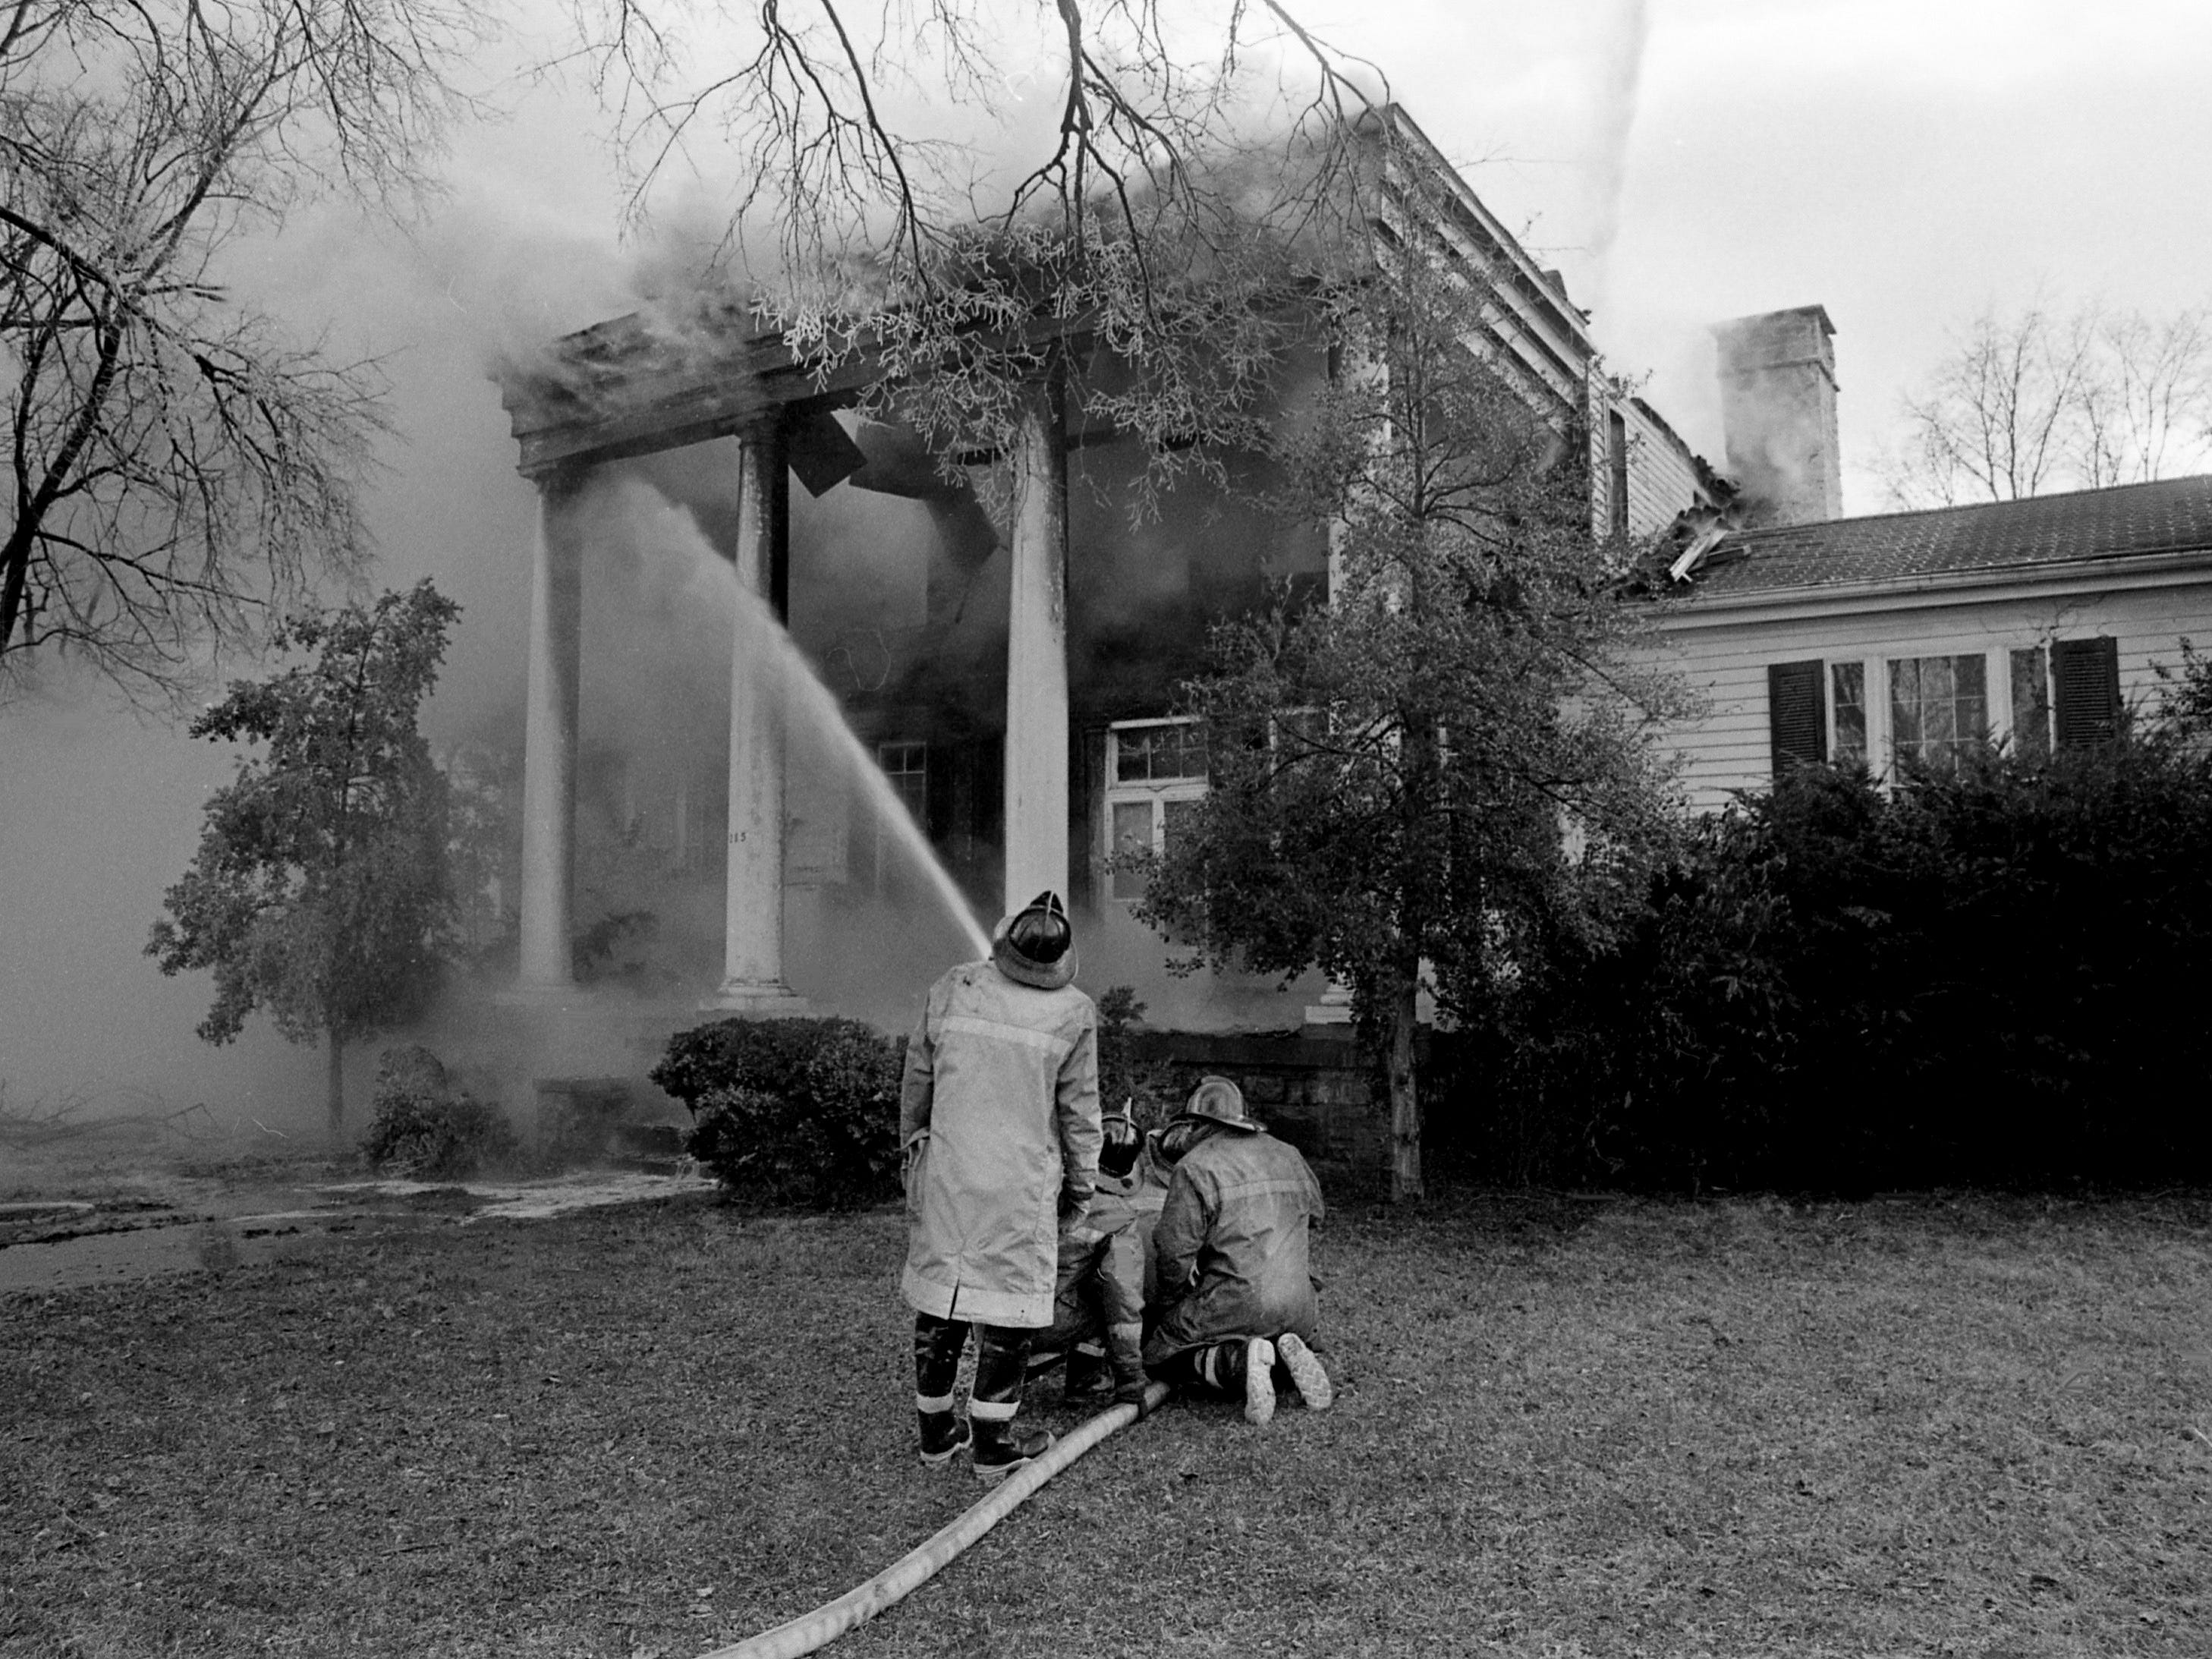 Firefighters pour water into a blaze that heavily damaged the upper floors of a vacant house at 215 Blanton Ave. on Jan. 2, 1979. The house was built in 1804 by G.M. Hill, father of the late Nashville business leader H.G. Hill.